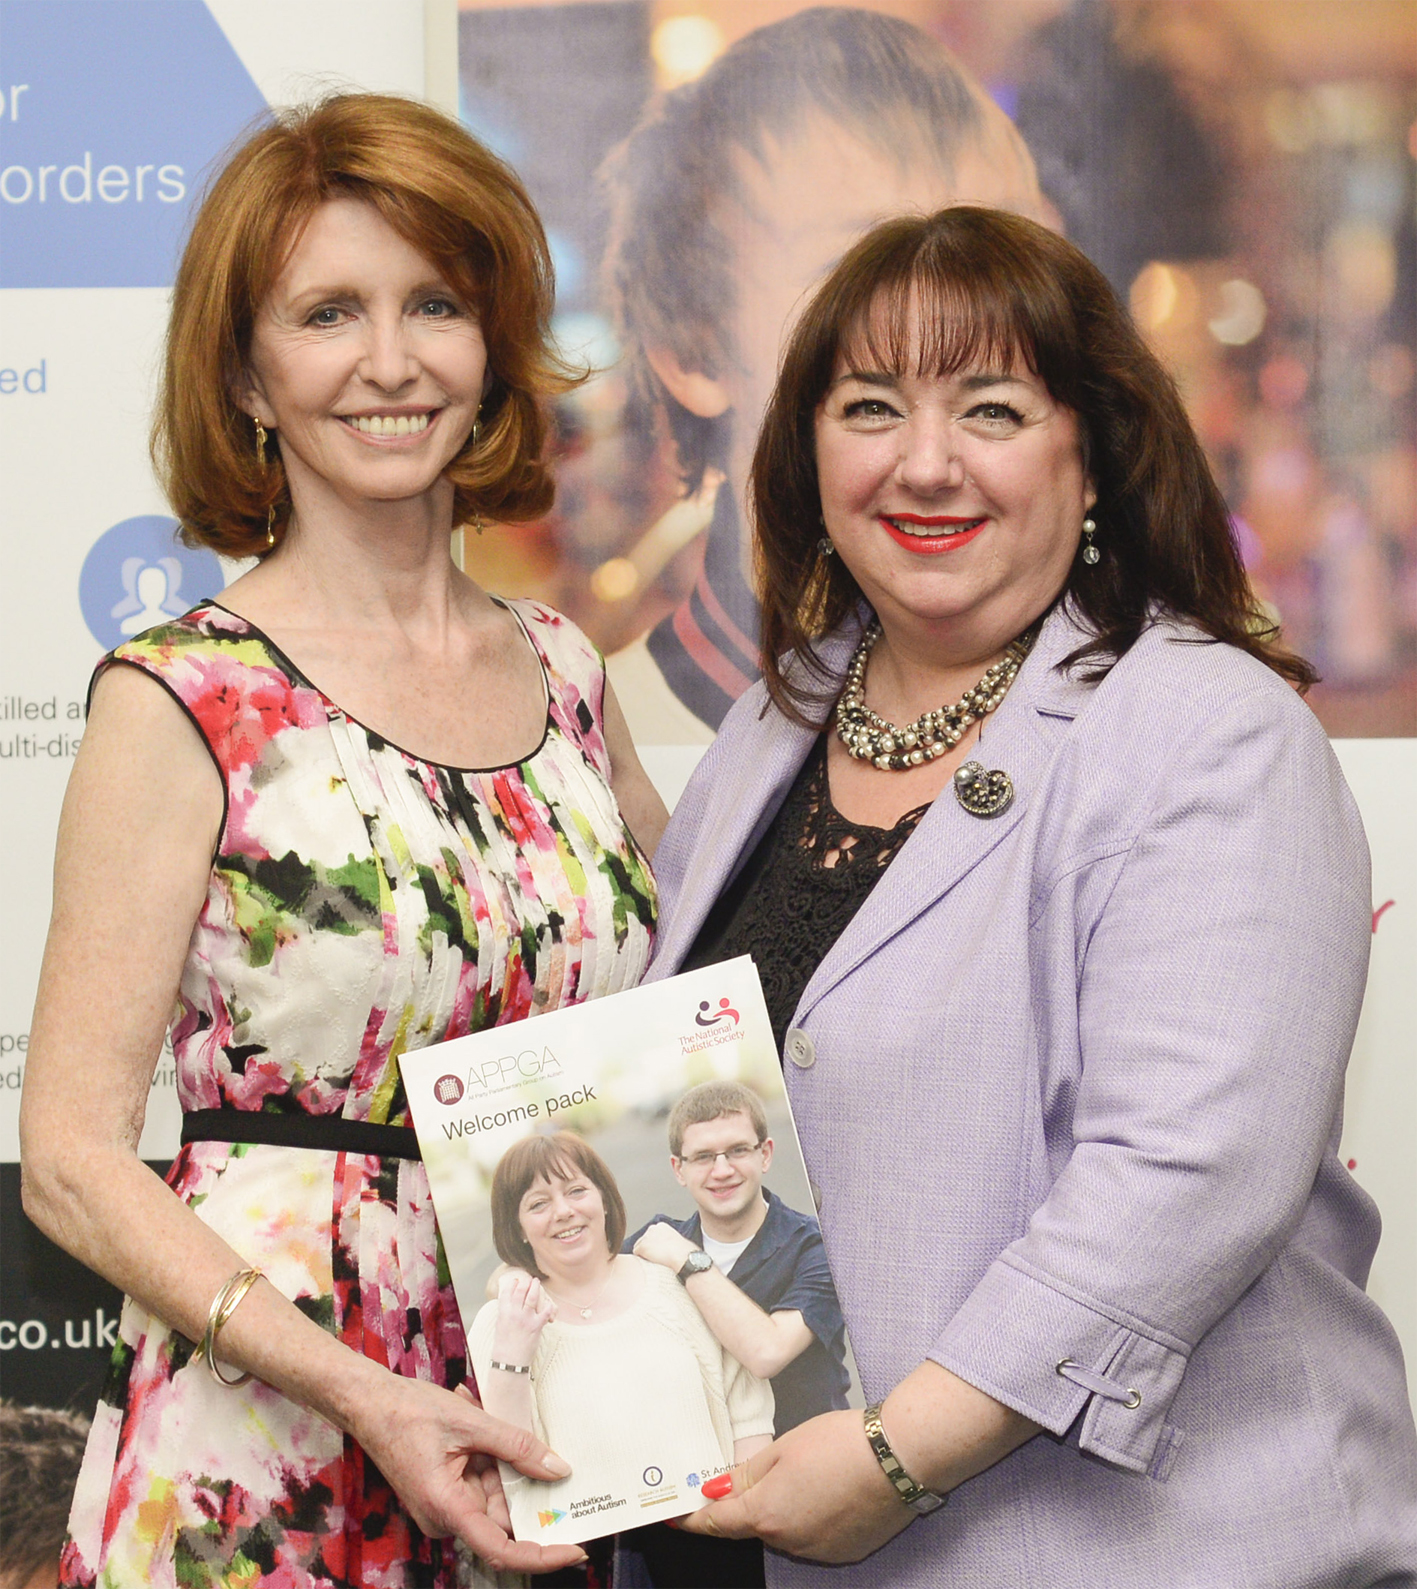 Sharon Hodgson MP with Jane Asher in Parliament